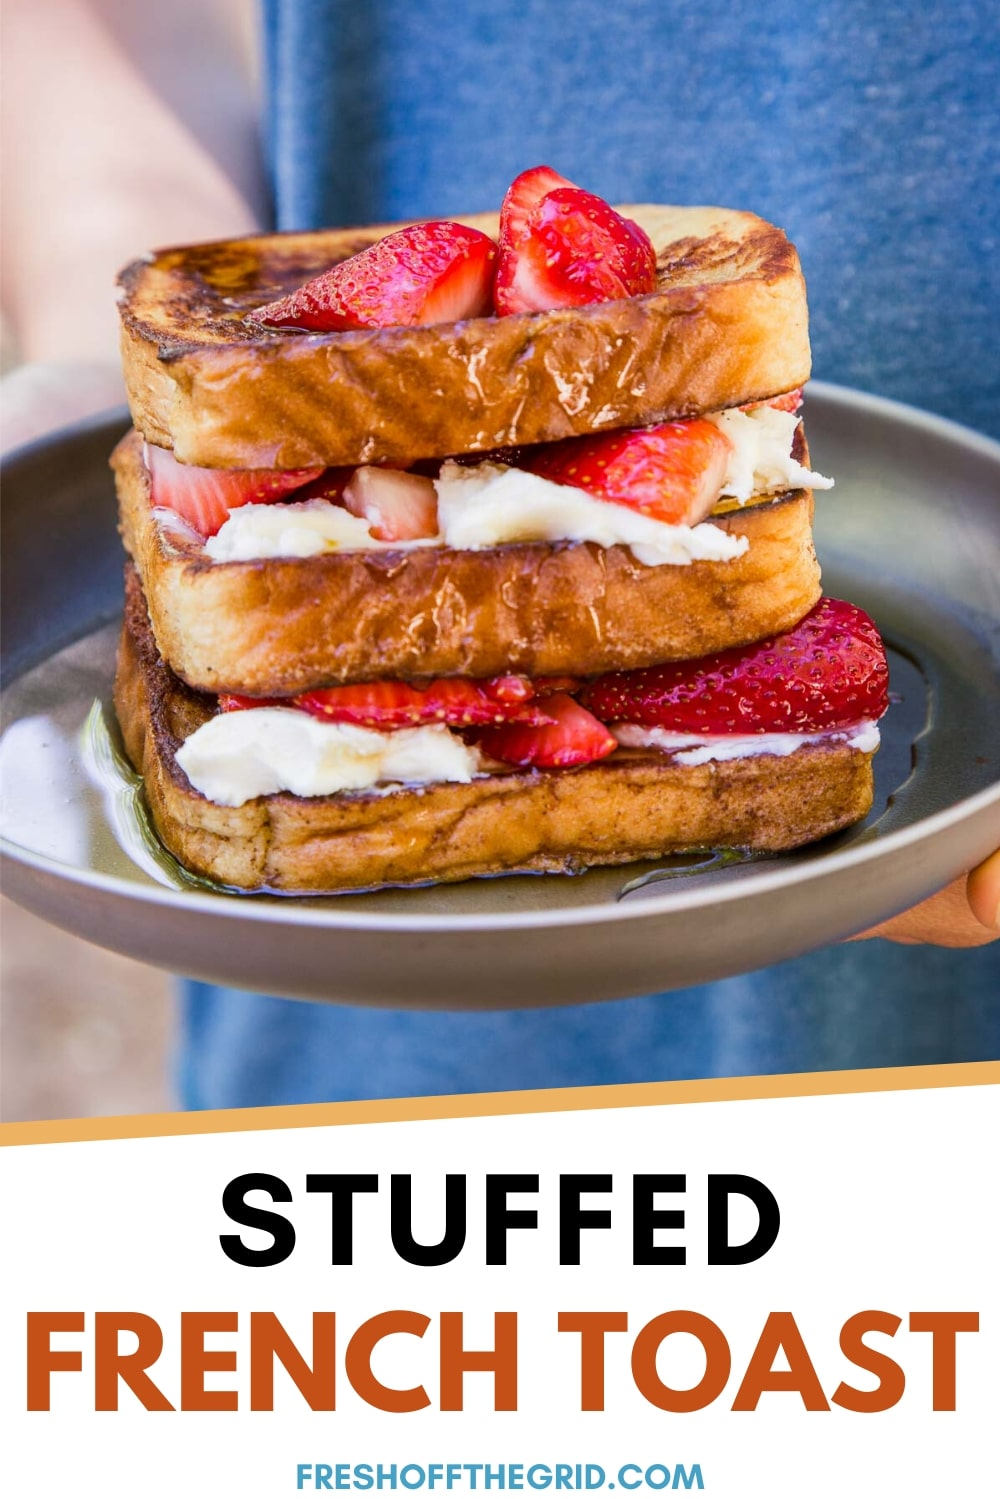 This Stuffed French Toast is filled with sweet mascarpone cheese and fresh strawberries, making it a decadent breakfast for camping or Sunday brunch! Camping food | Camping meals via @freshoffthegrid